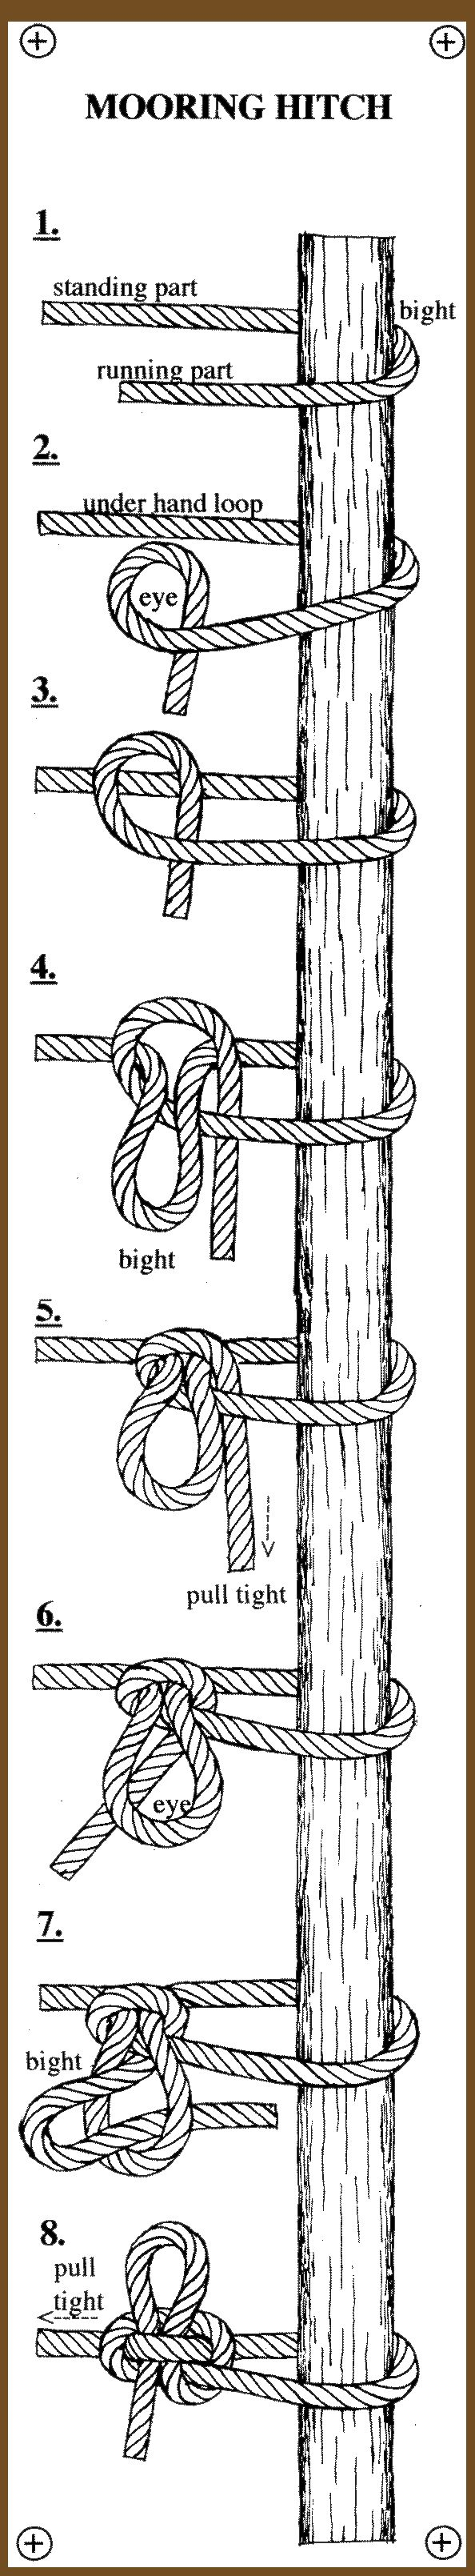 http://www.paracordist.com repin : mooring hitch #knot Quicky release knot, could come in very handy...